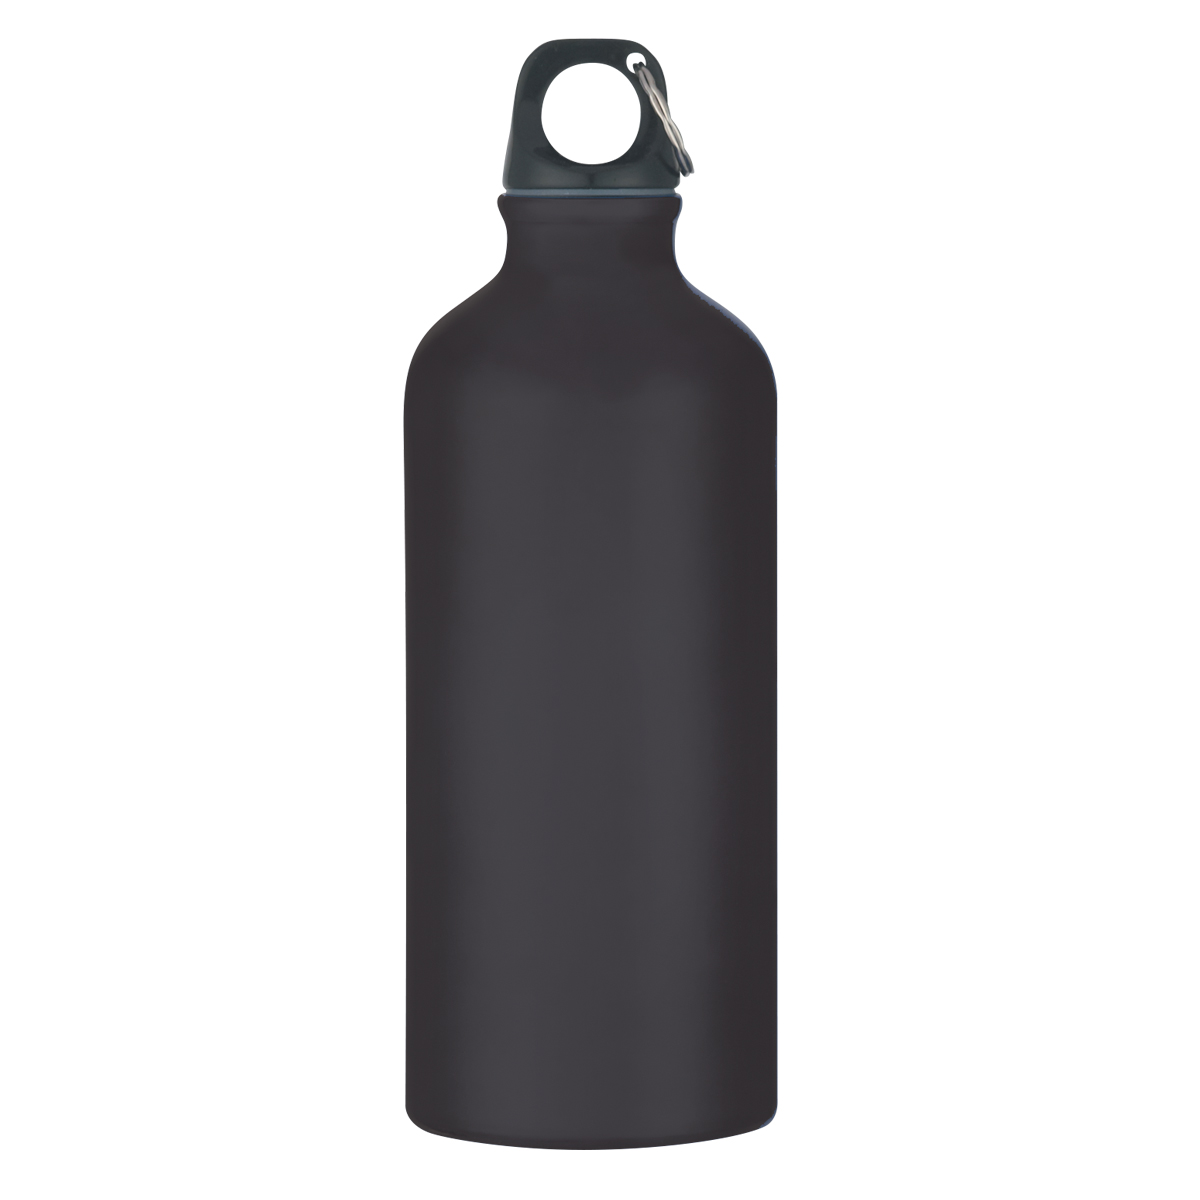 #CM 5701 - 20 Oz. Tundra Aluminum Bike Bottle